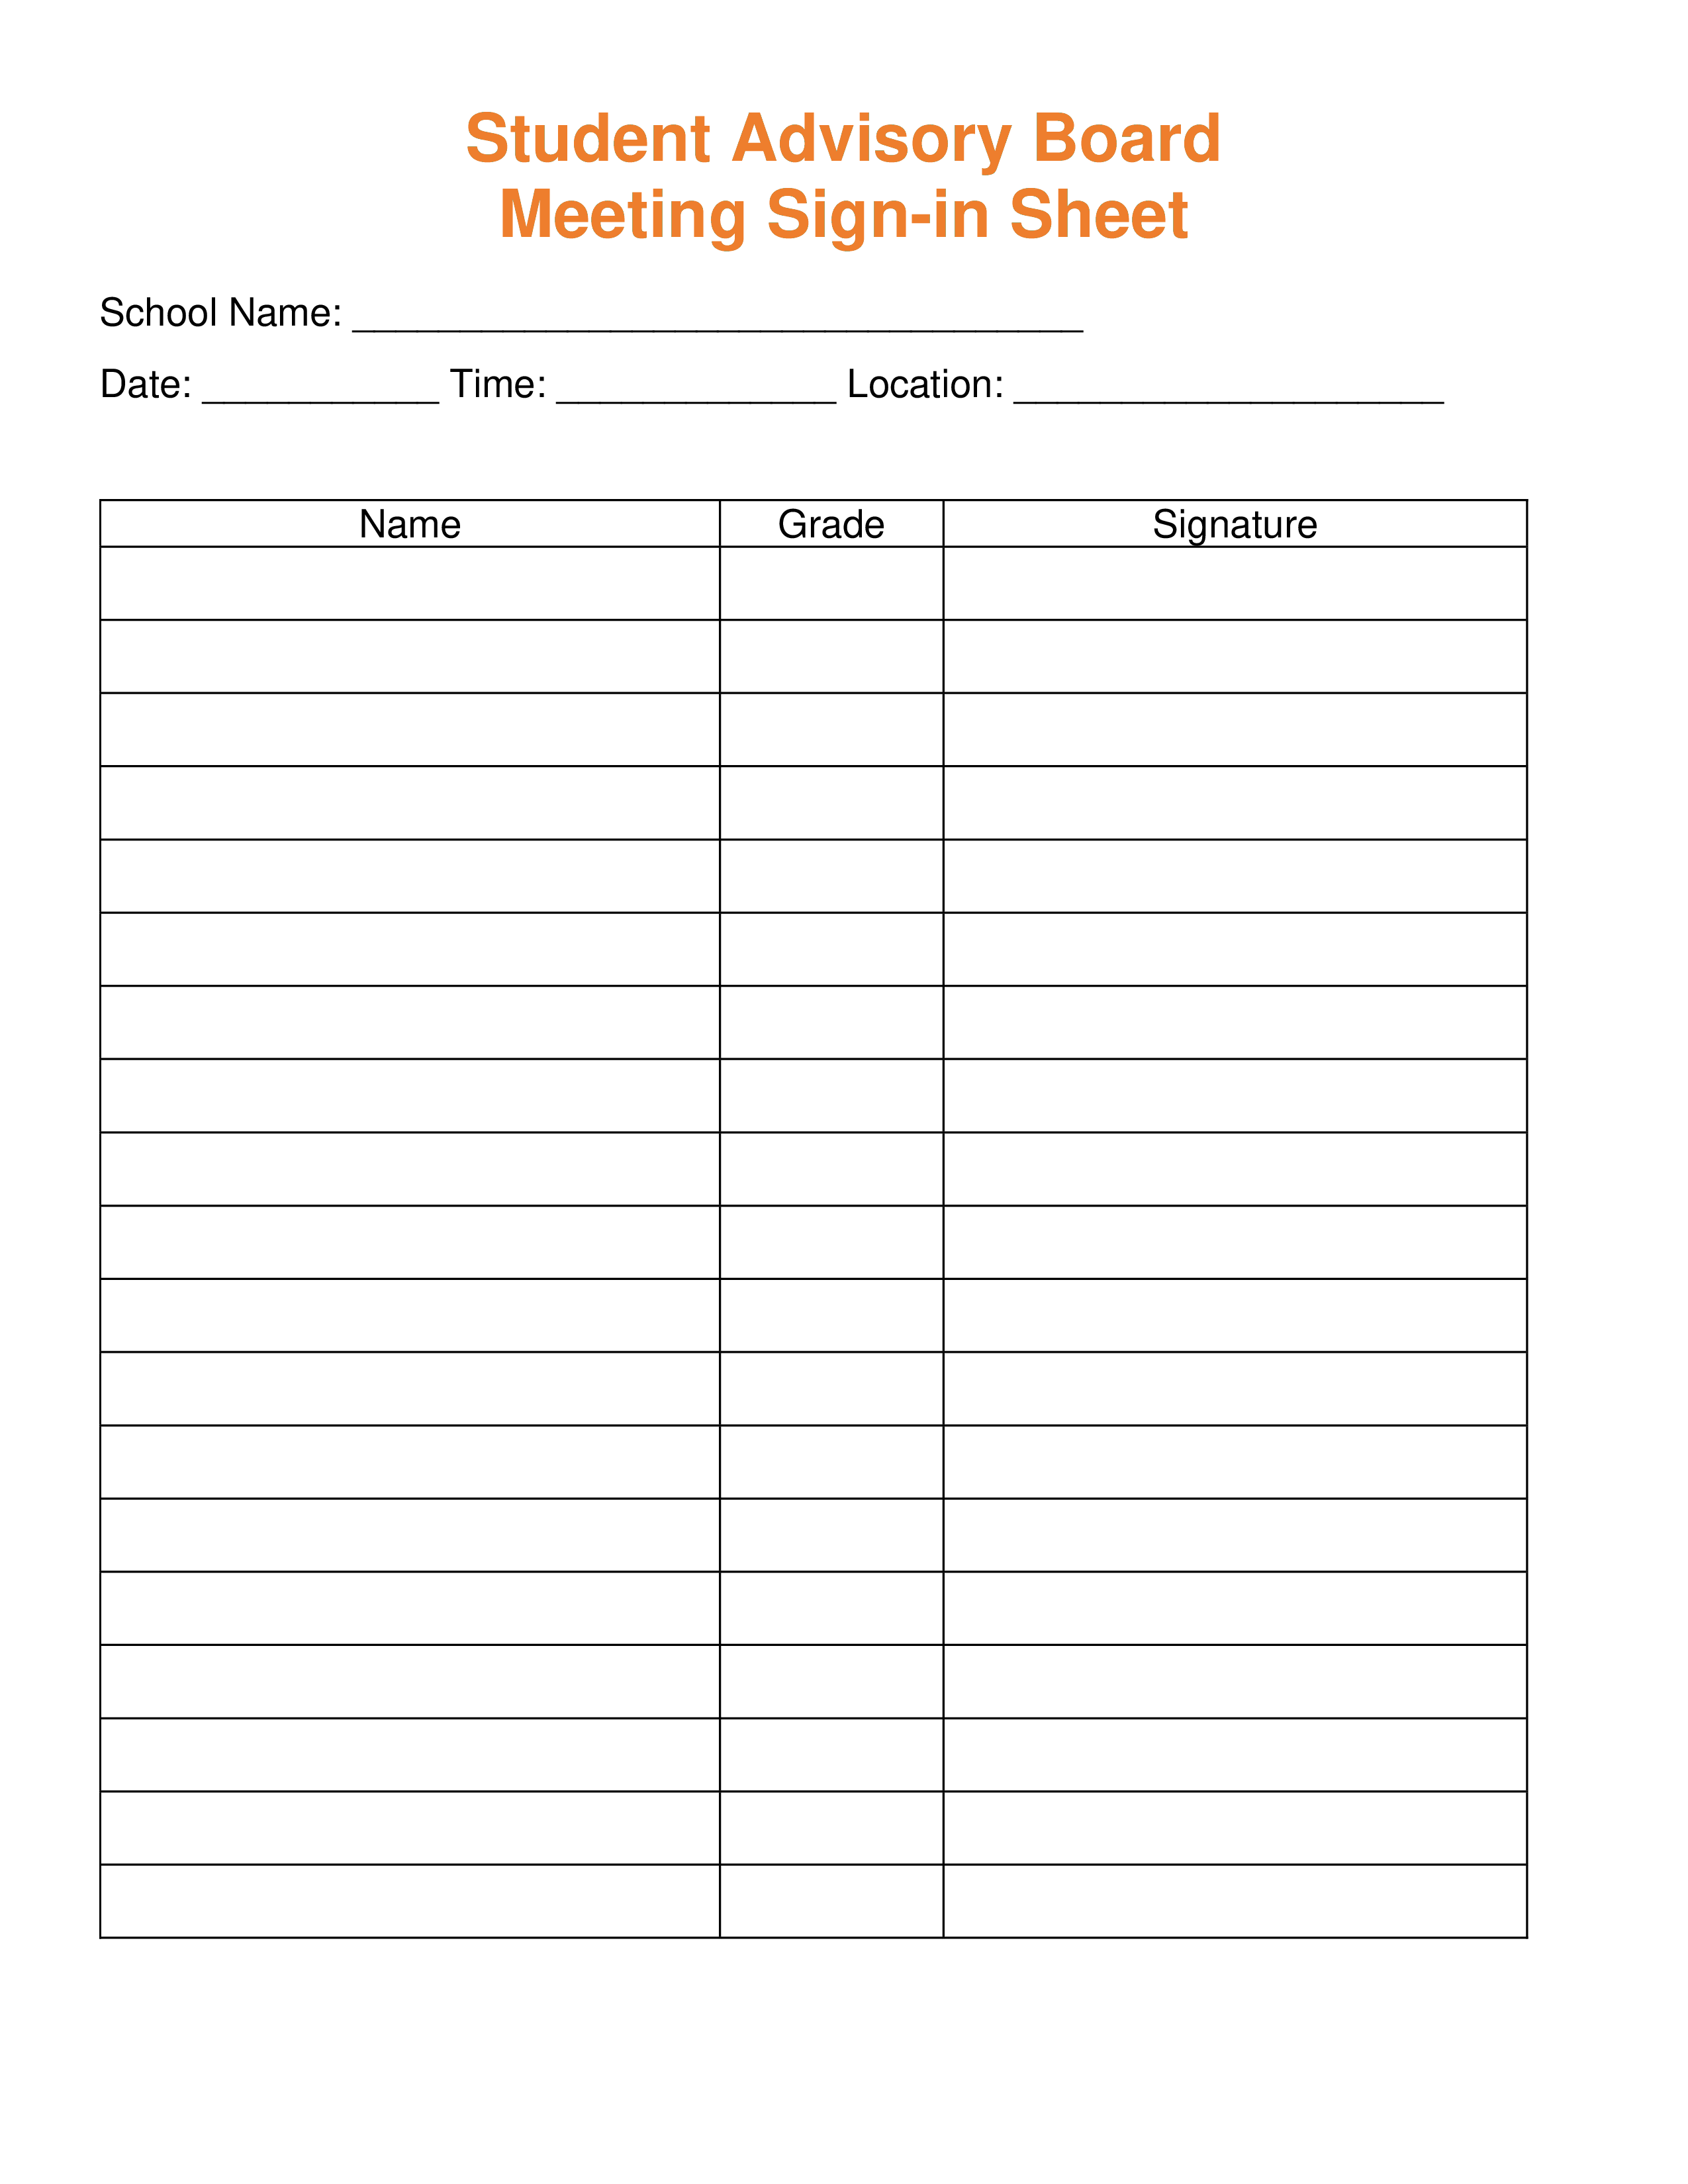 Board Meeting Sign In Sheet